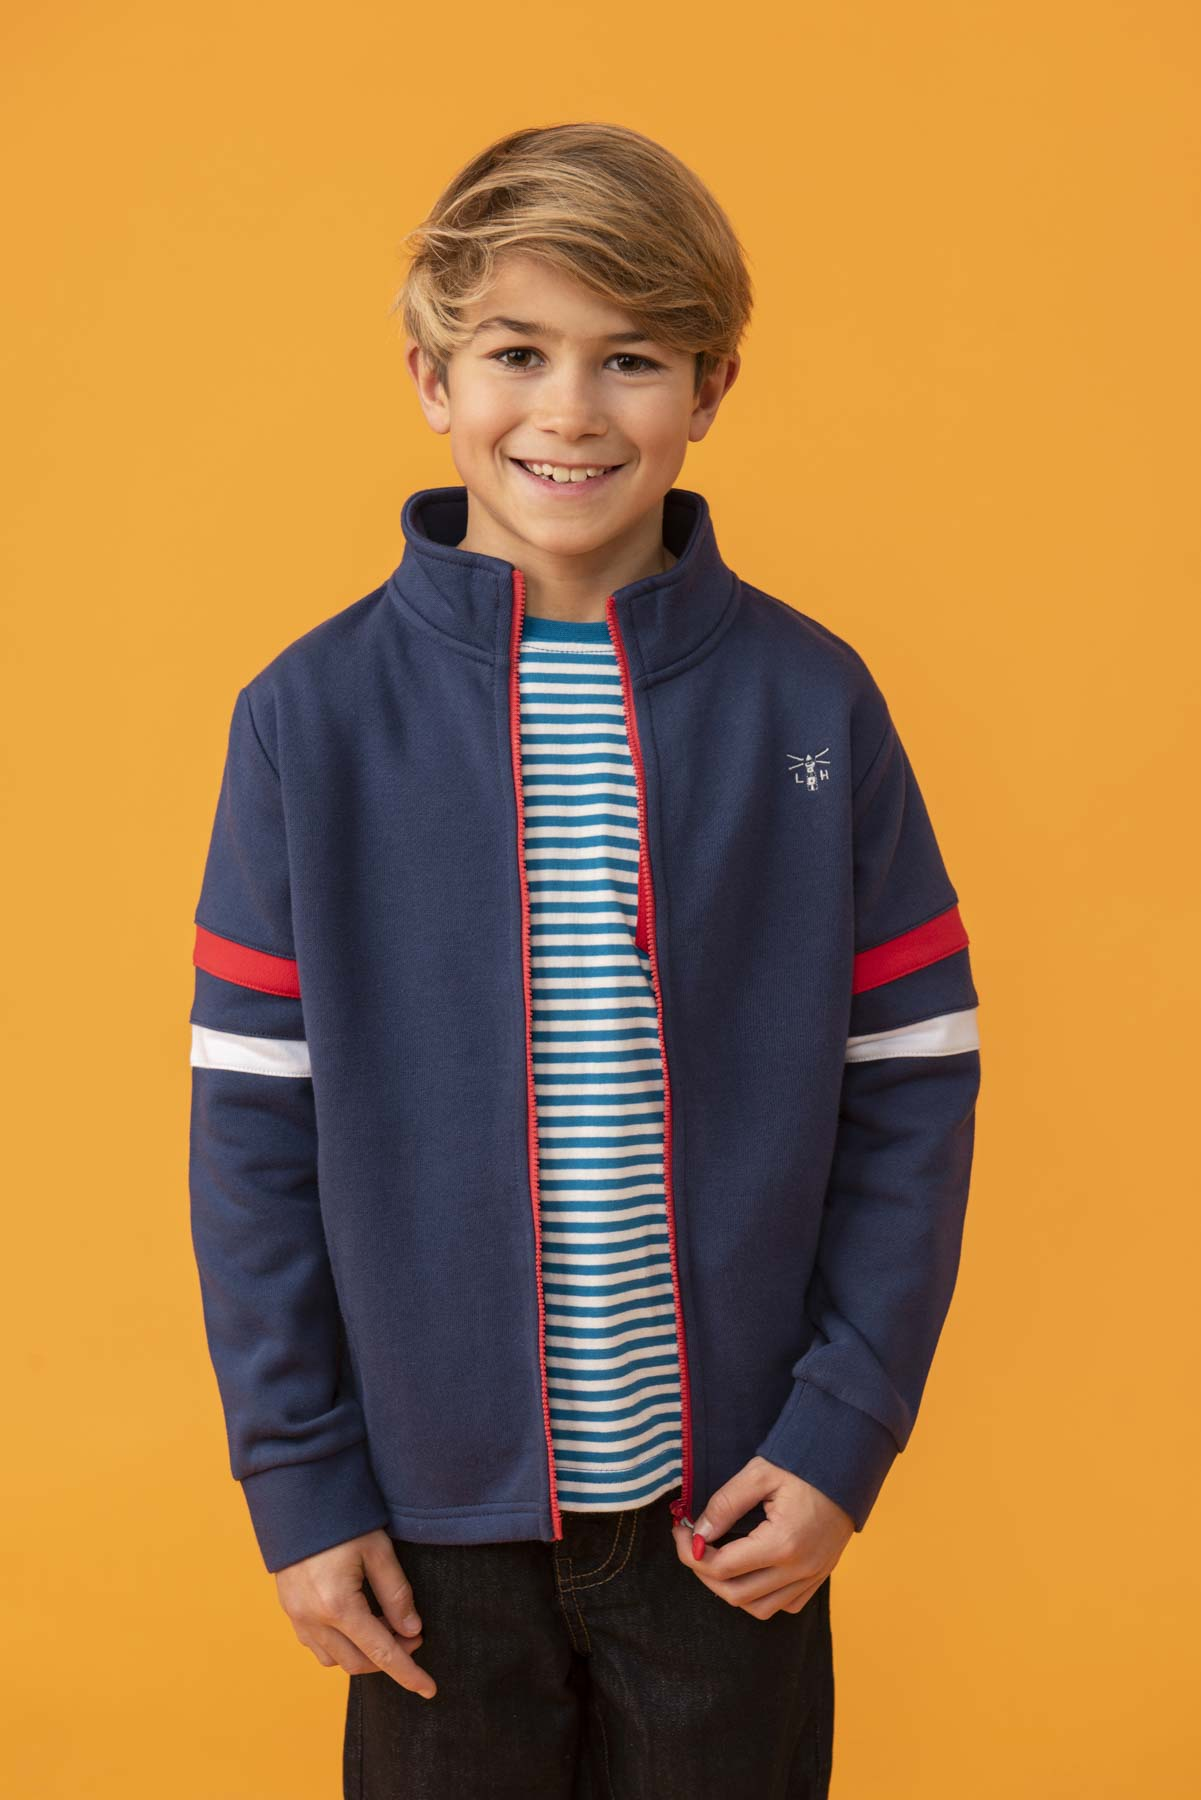 Boy's Tops - Zach - Navy Full Zip Top